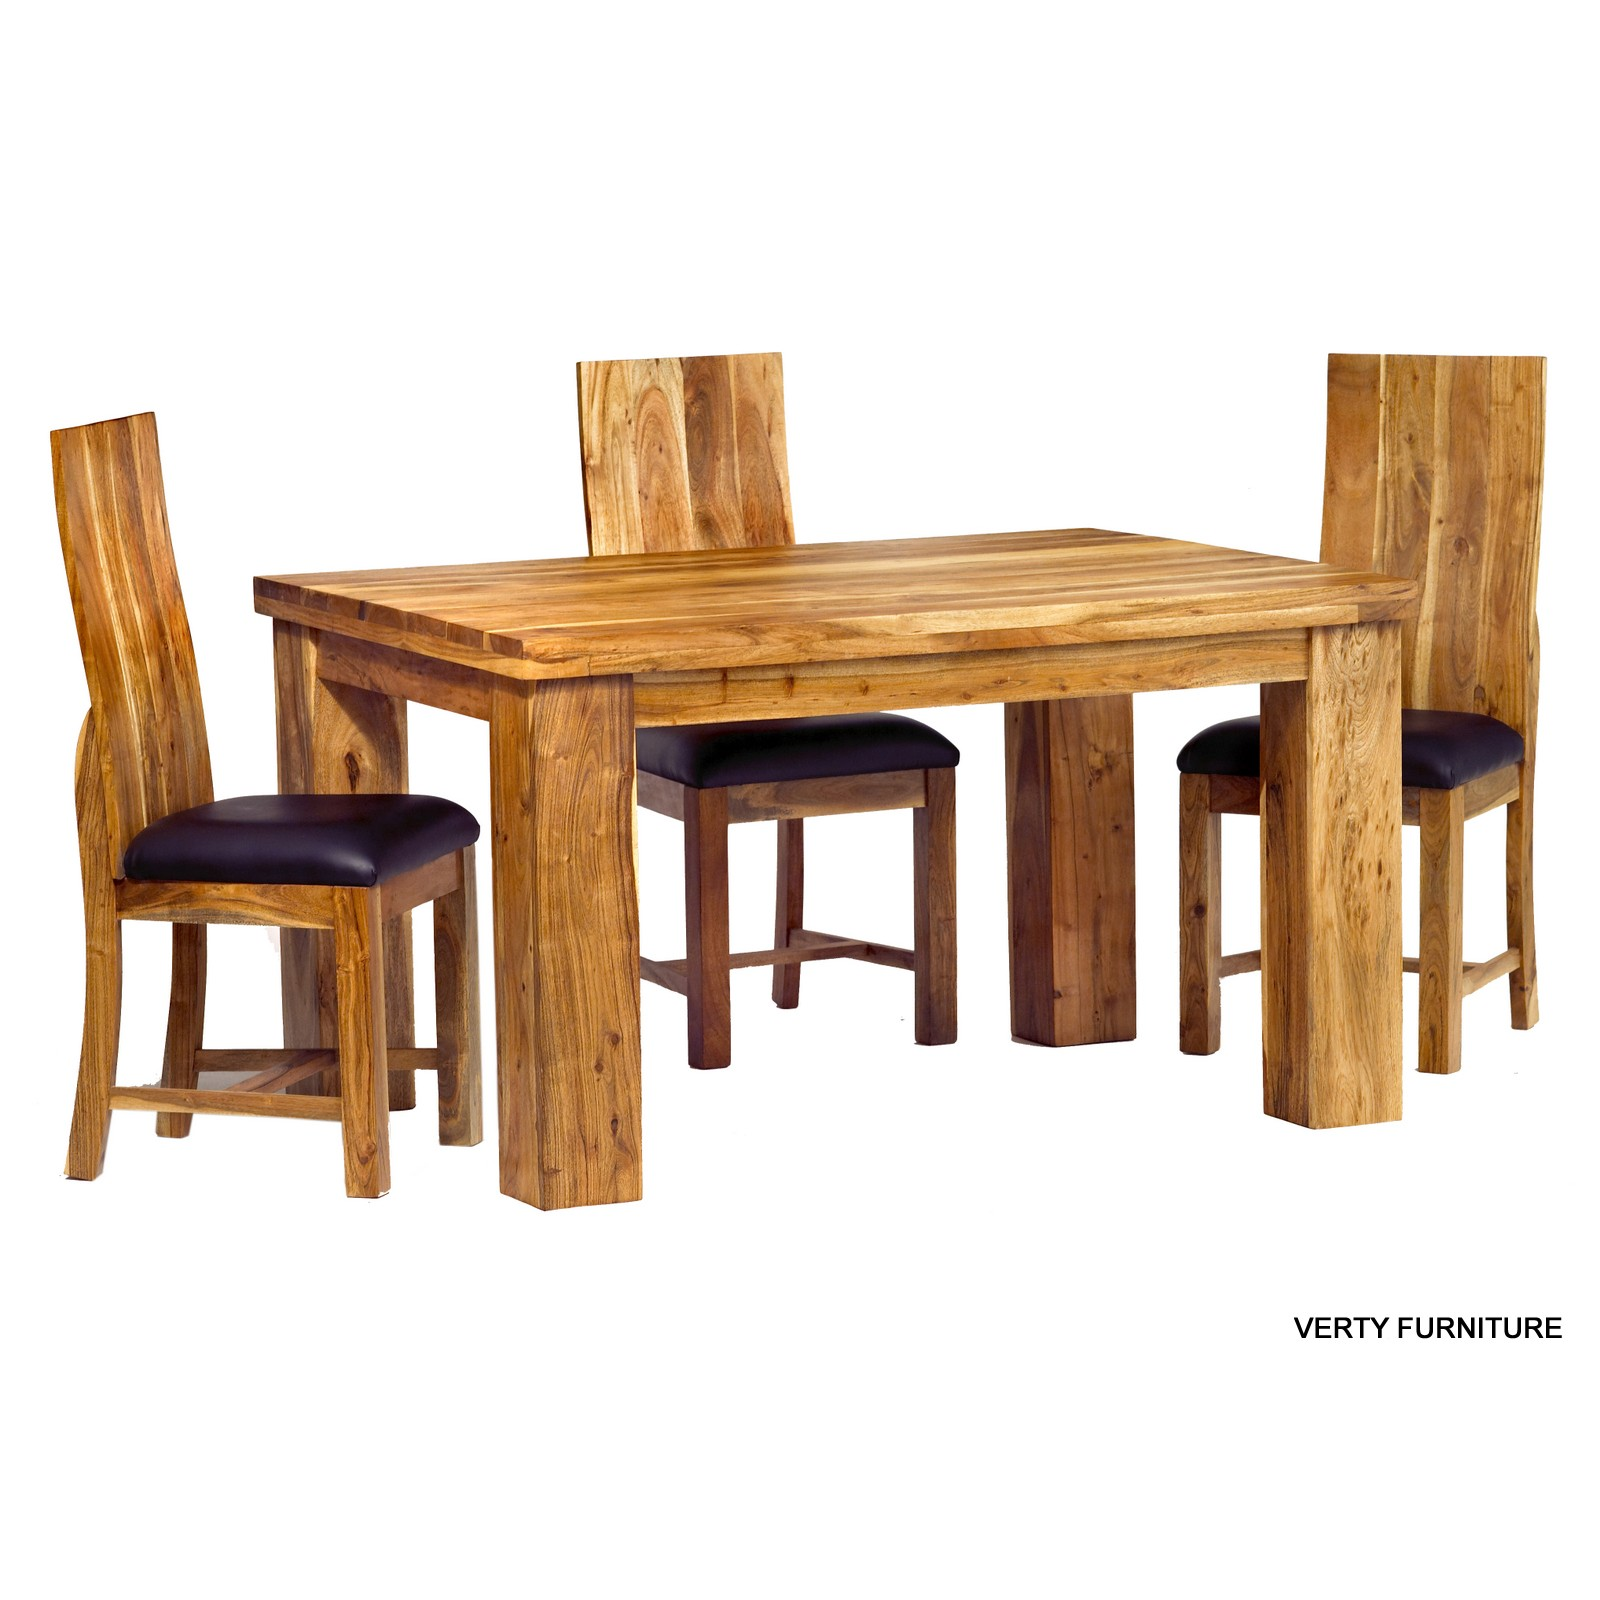 Charmant Acacia Dining Table   Small With 4 Chairs